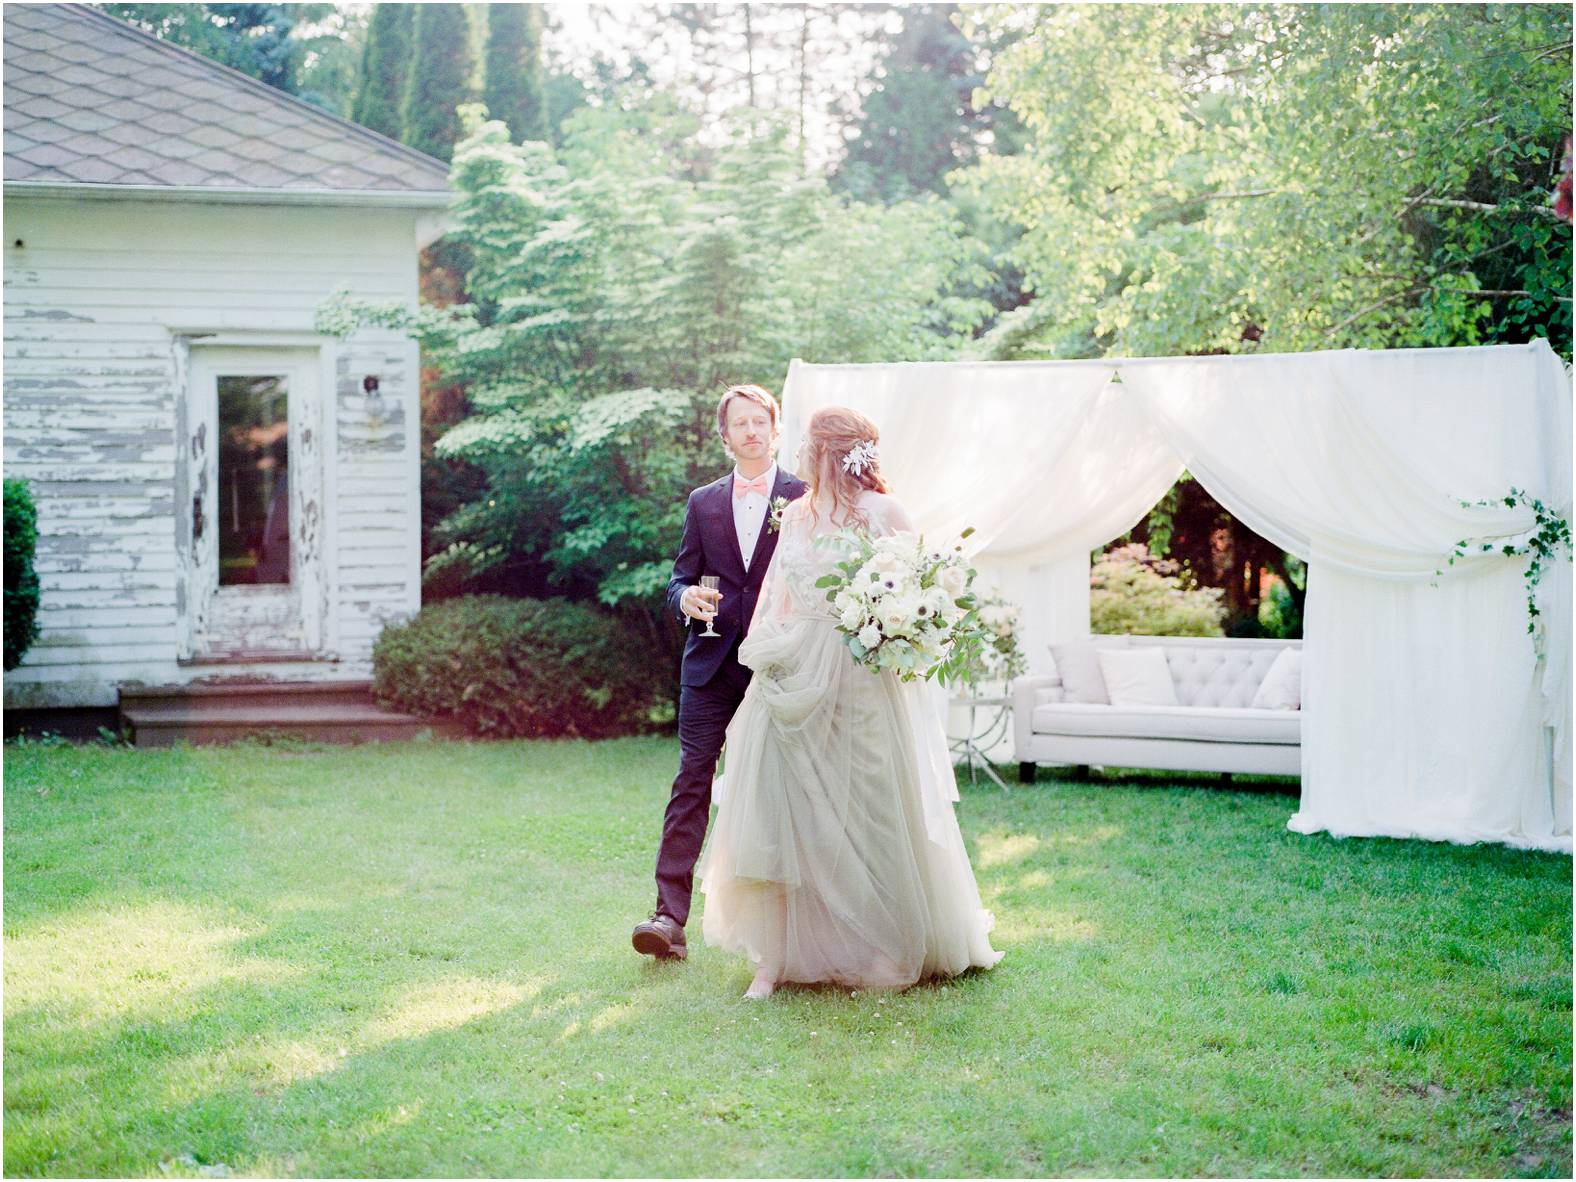 bride and groom walk away from draped private lounge during intimate garden wedding in ontario